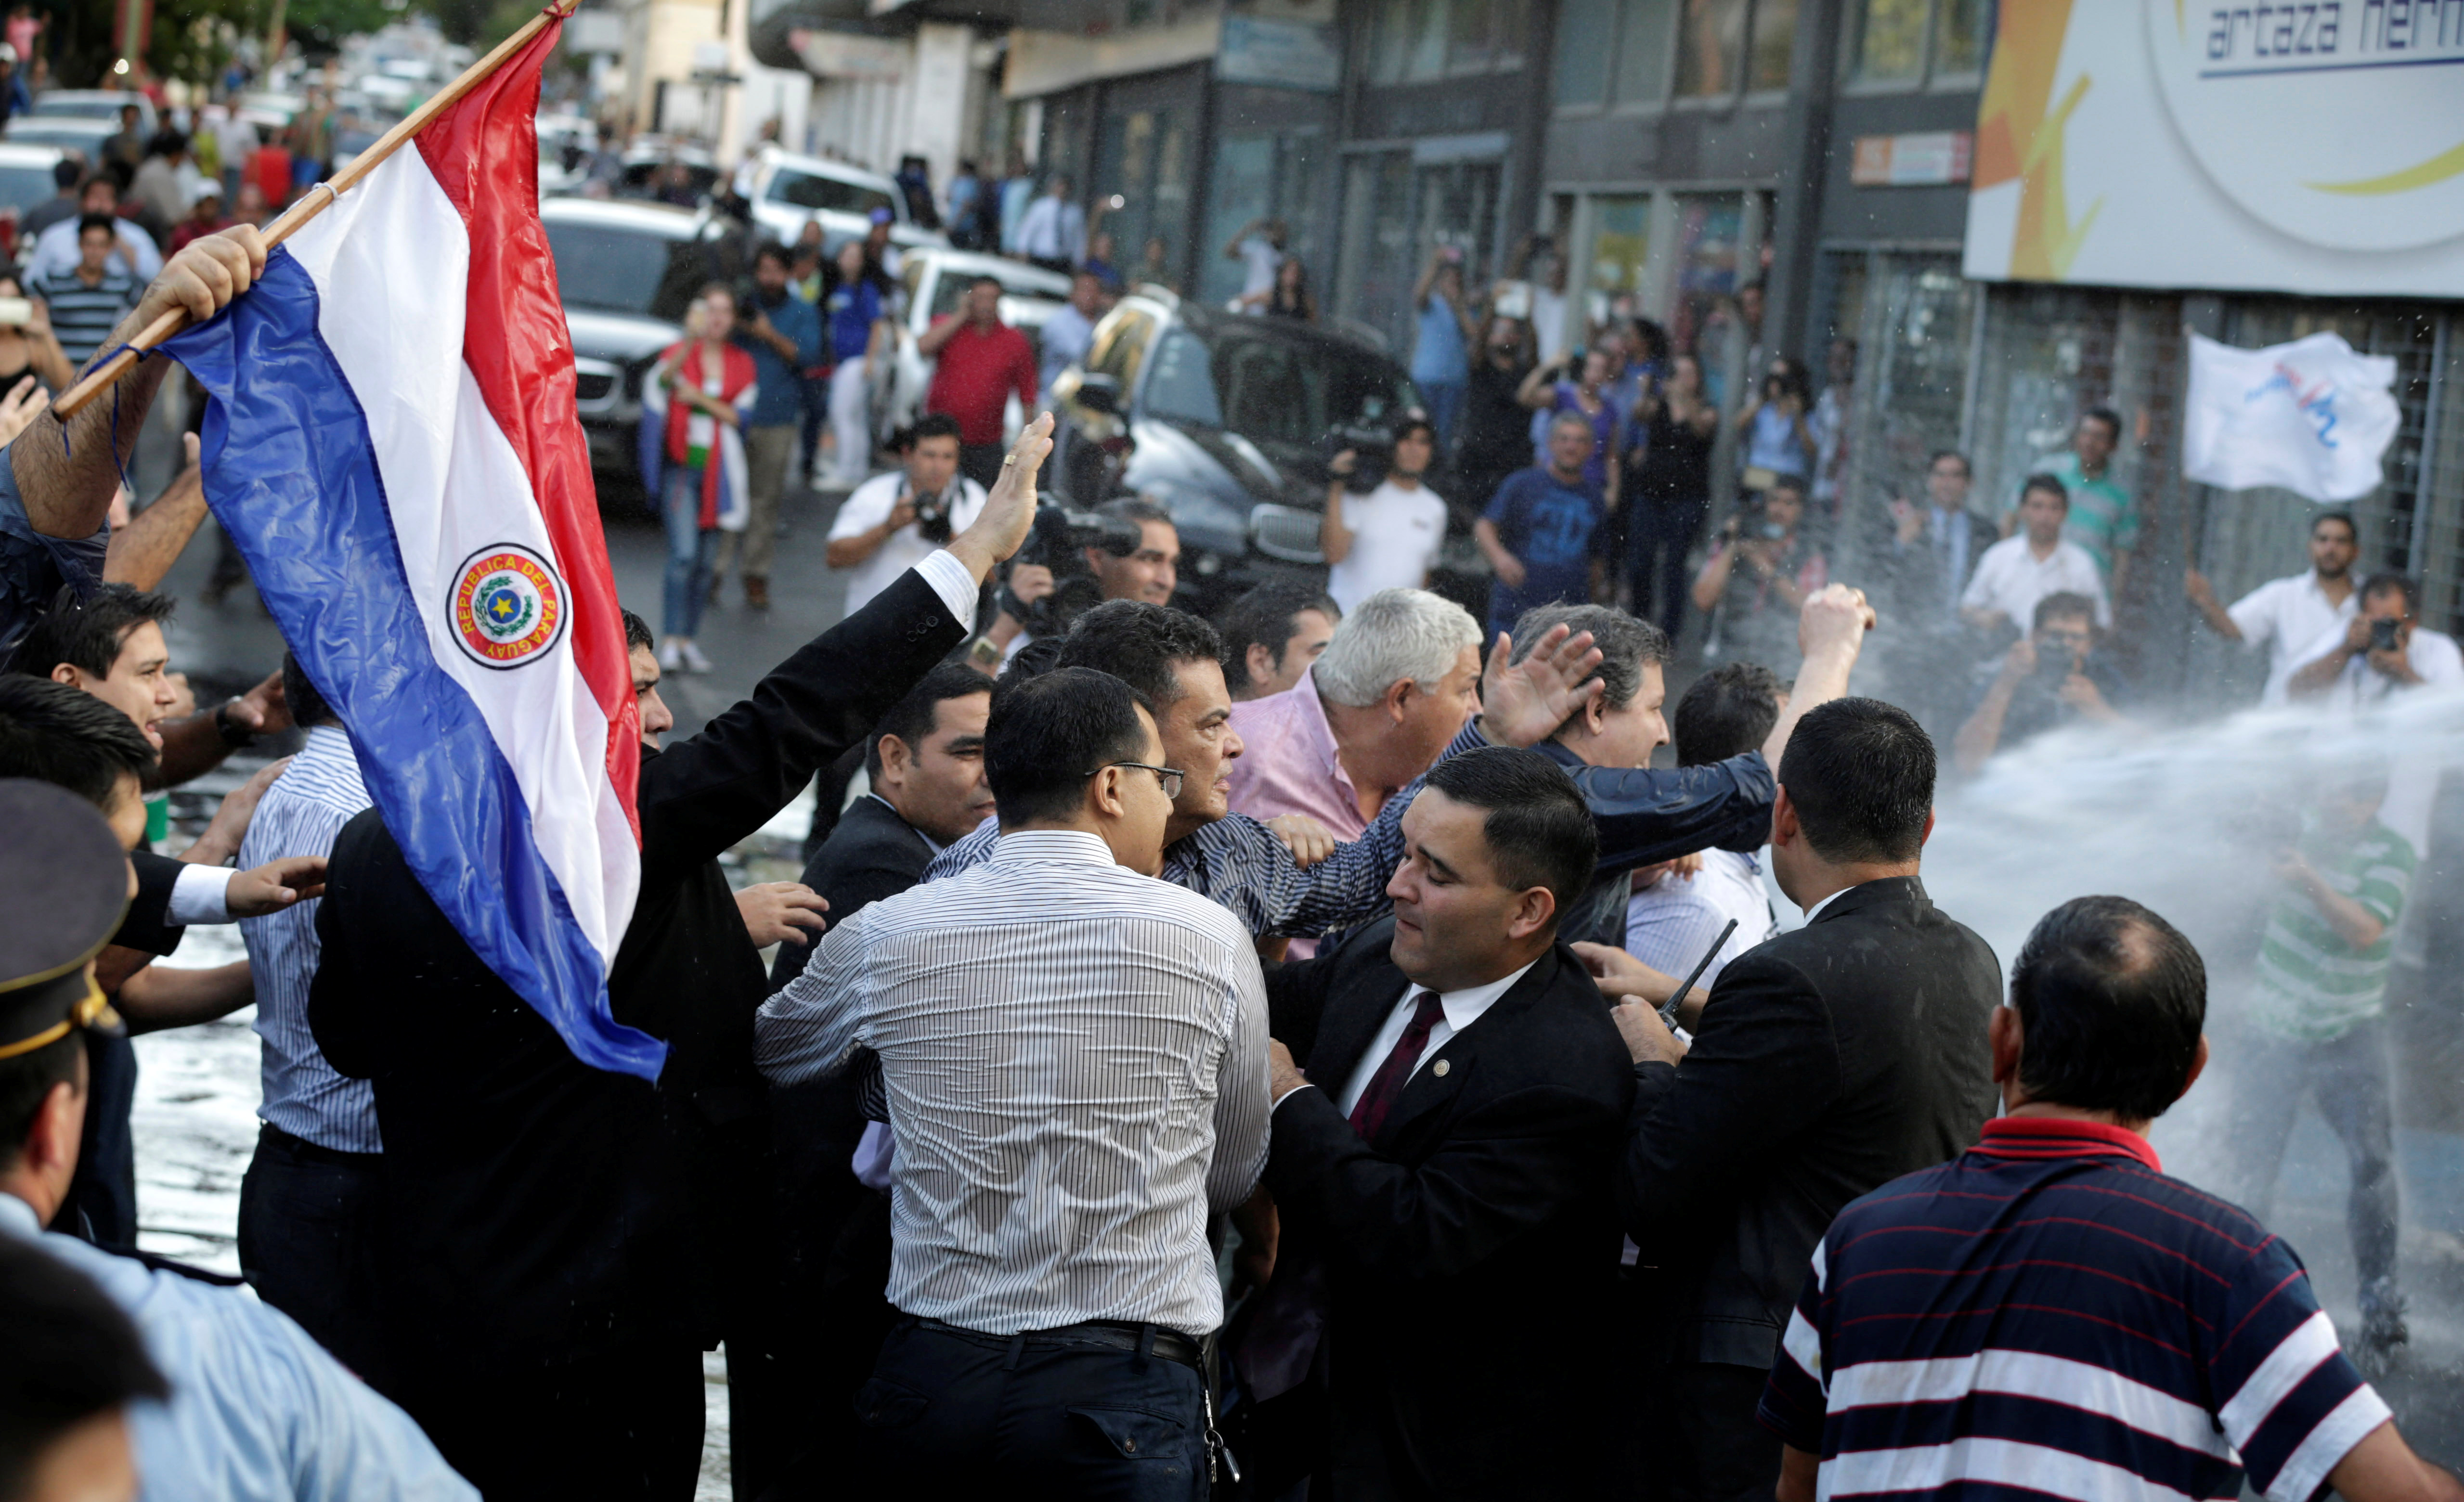 President of Paraguay's congress Roberto Acevedo is seen during a demonstration against a possible change in the law to allow for presidential re-election in front of the Congress building in Asuncion